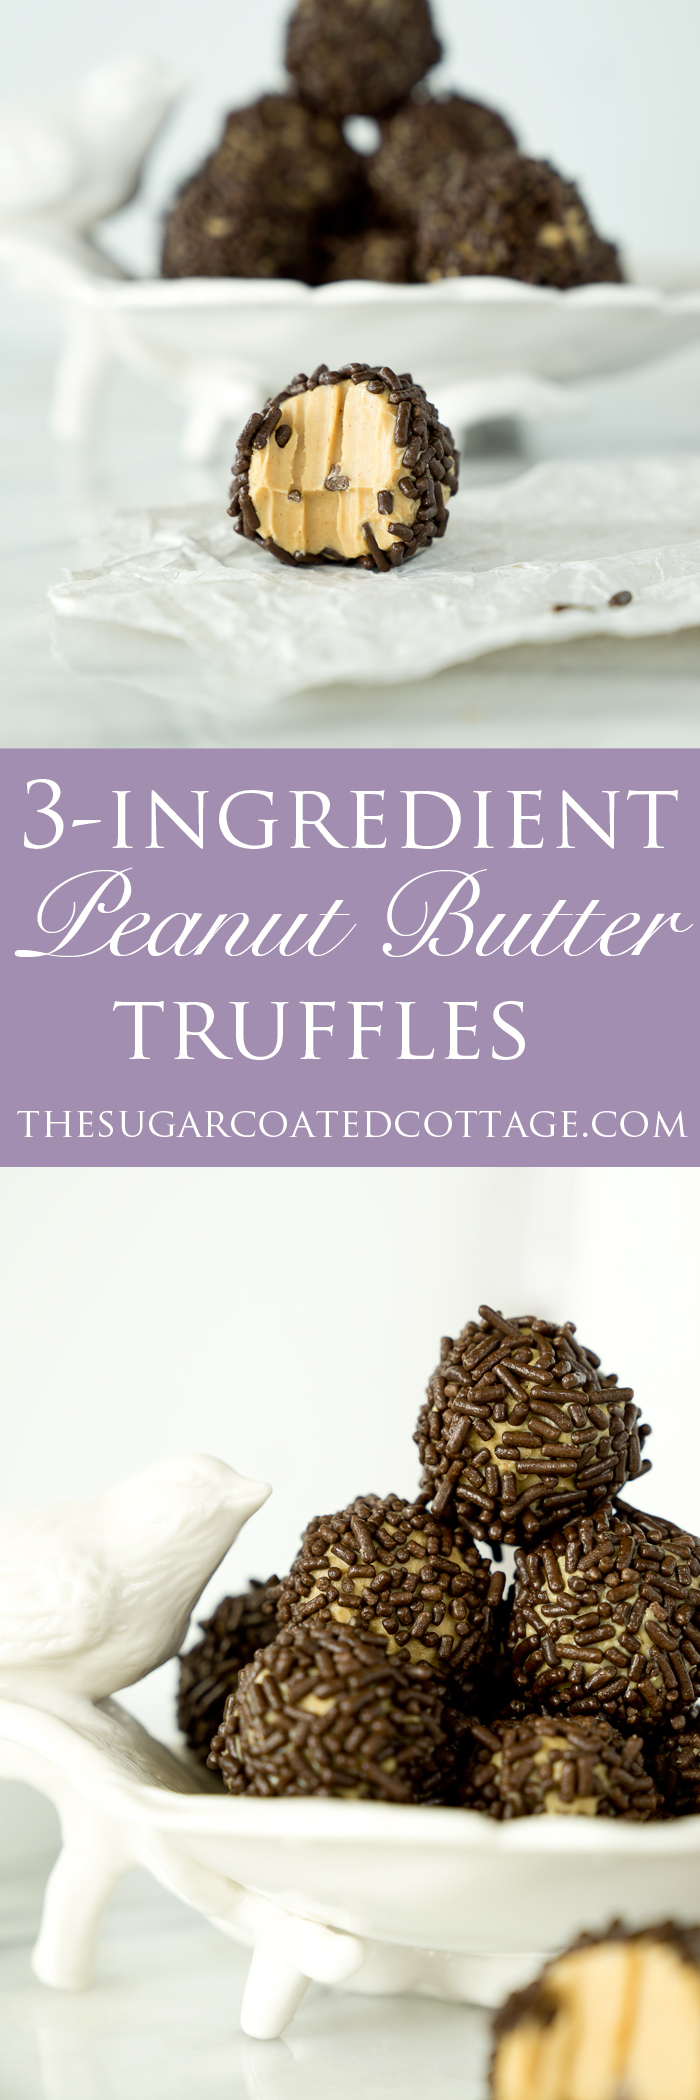 Easy 3 Ingredient Creamy Peanut Butter Truffles. The easiest 3 ingredient truffle recipe you'll ever make.| thesugarcoatedcottage.com